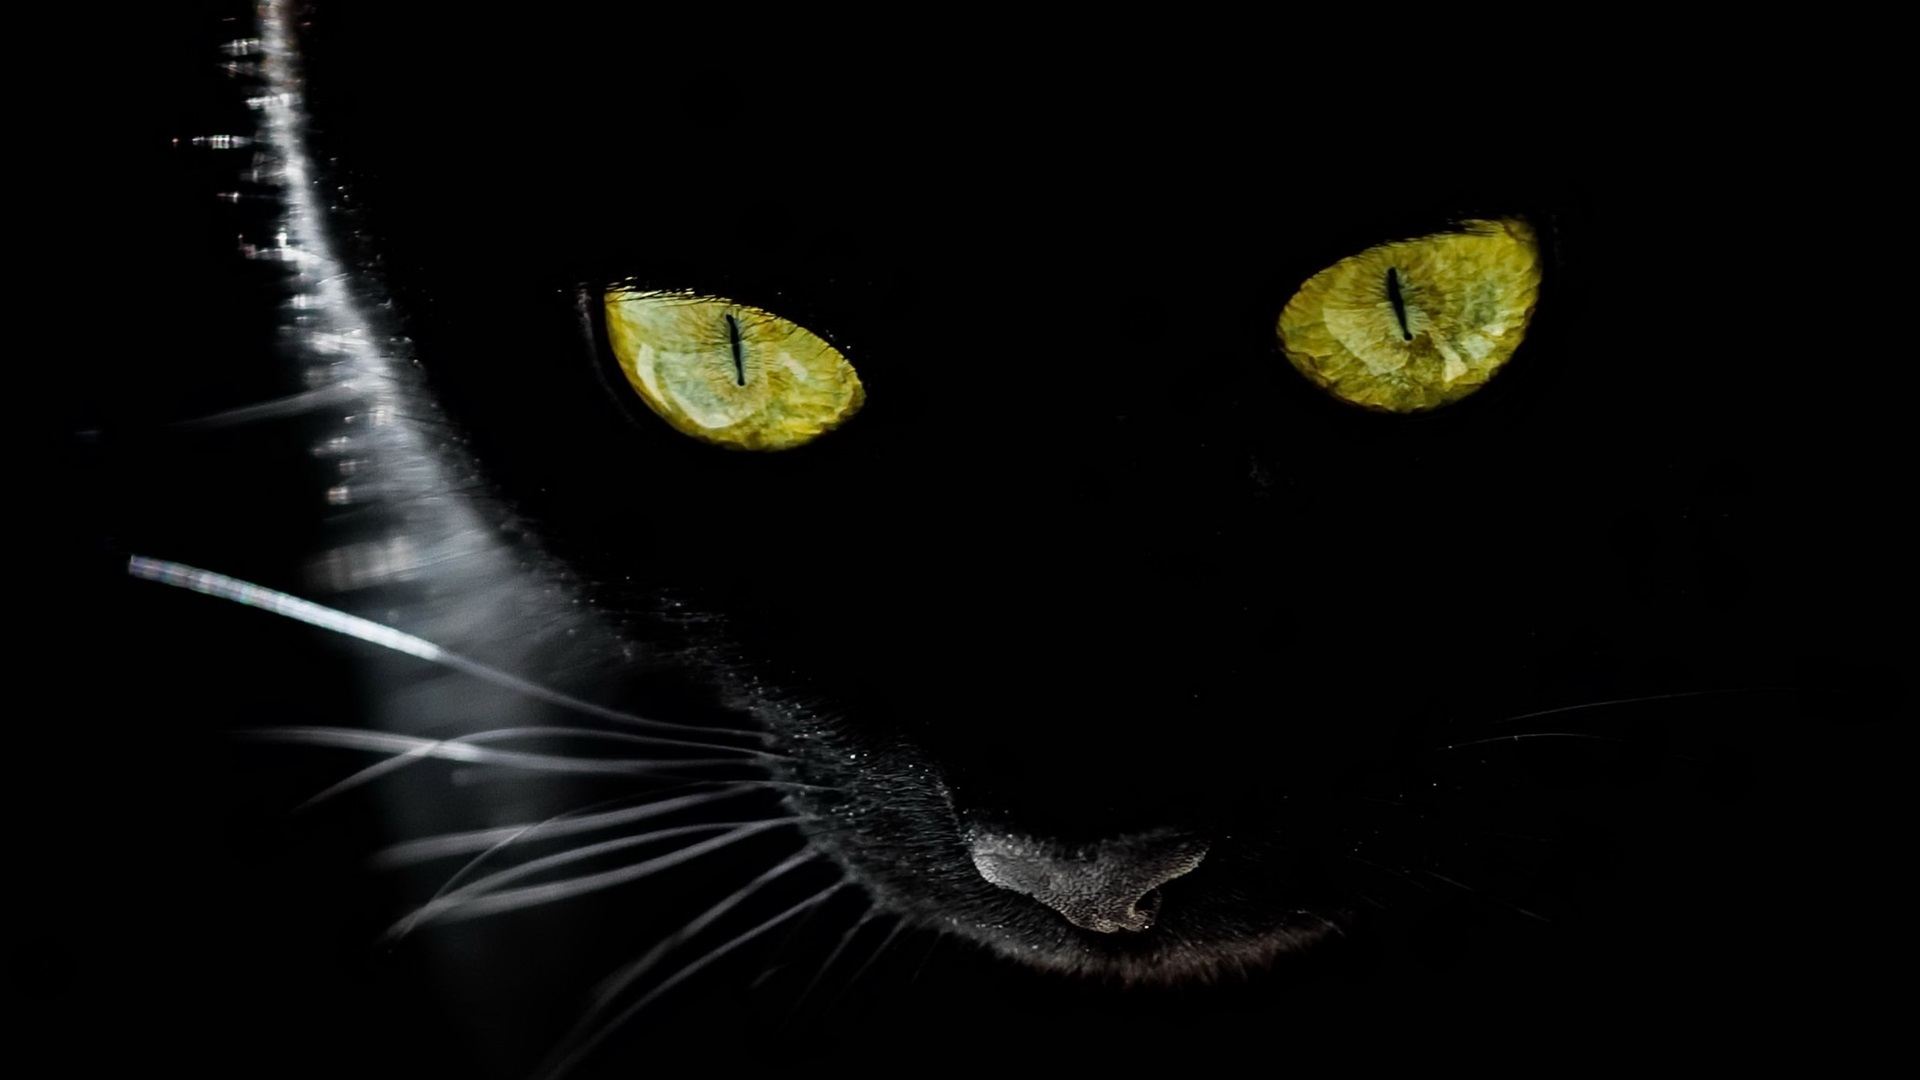 Wallpaper Black Cat Yellow Eyes Black Background Backlight 1920x1200 Hd Picture Image